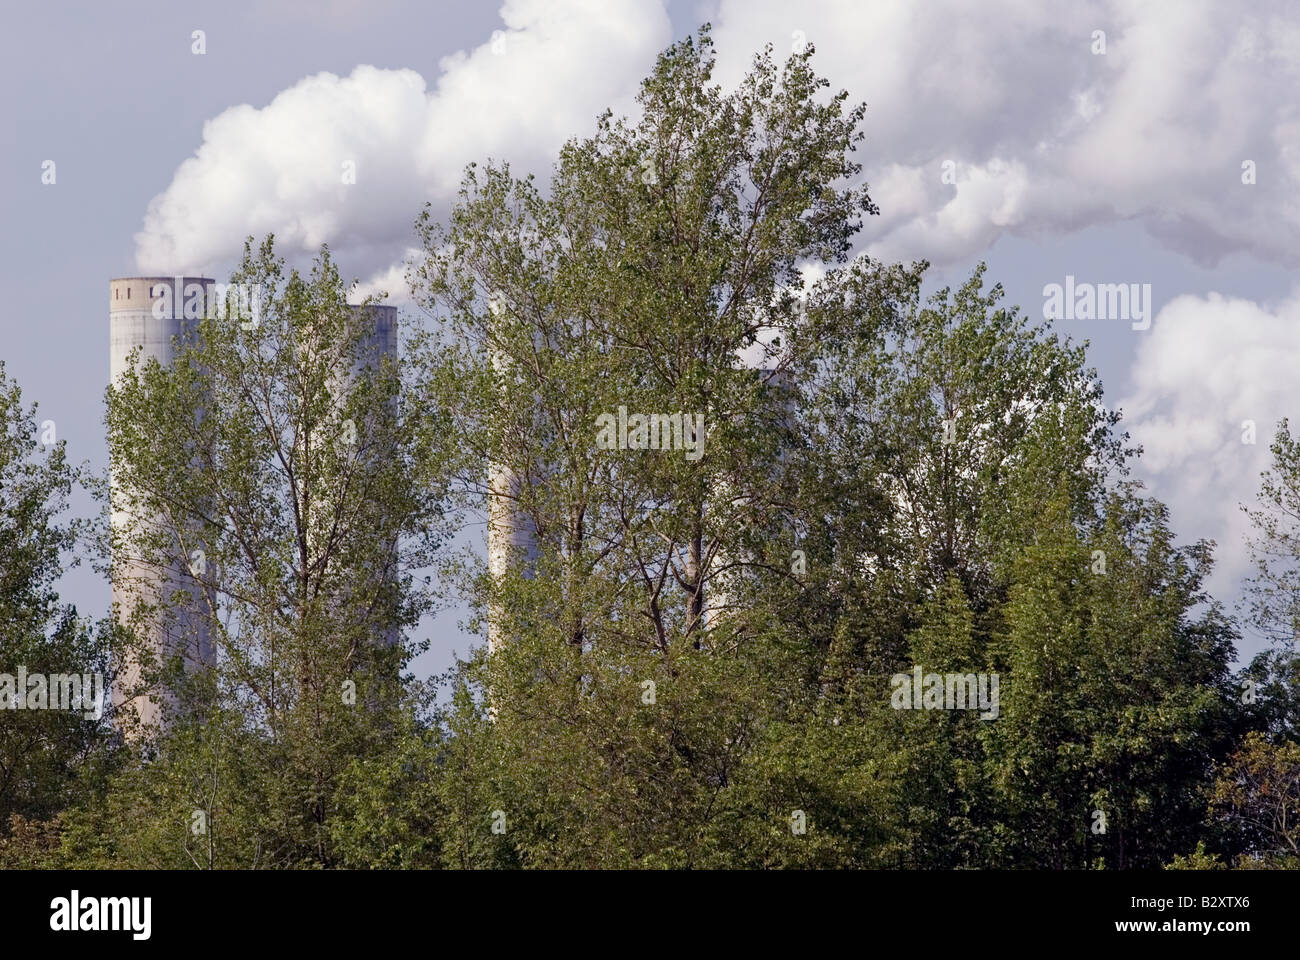 Smoke rising above trees from the Frimmersdorf coal-fired power station, Grevenbroich, North Rhine-Westphalia, Germany. - Stock Image